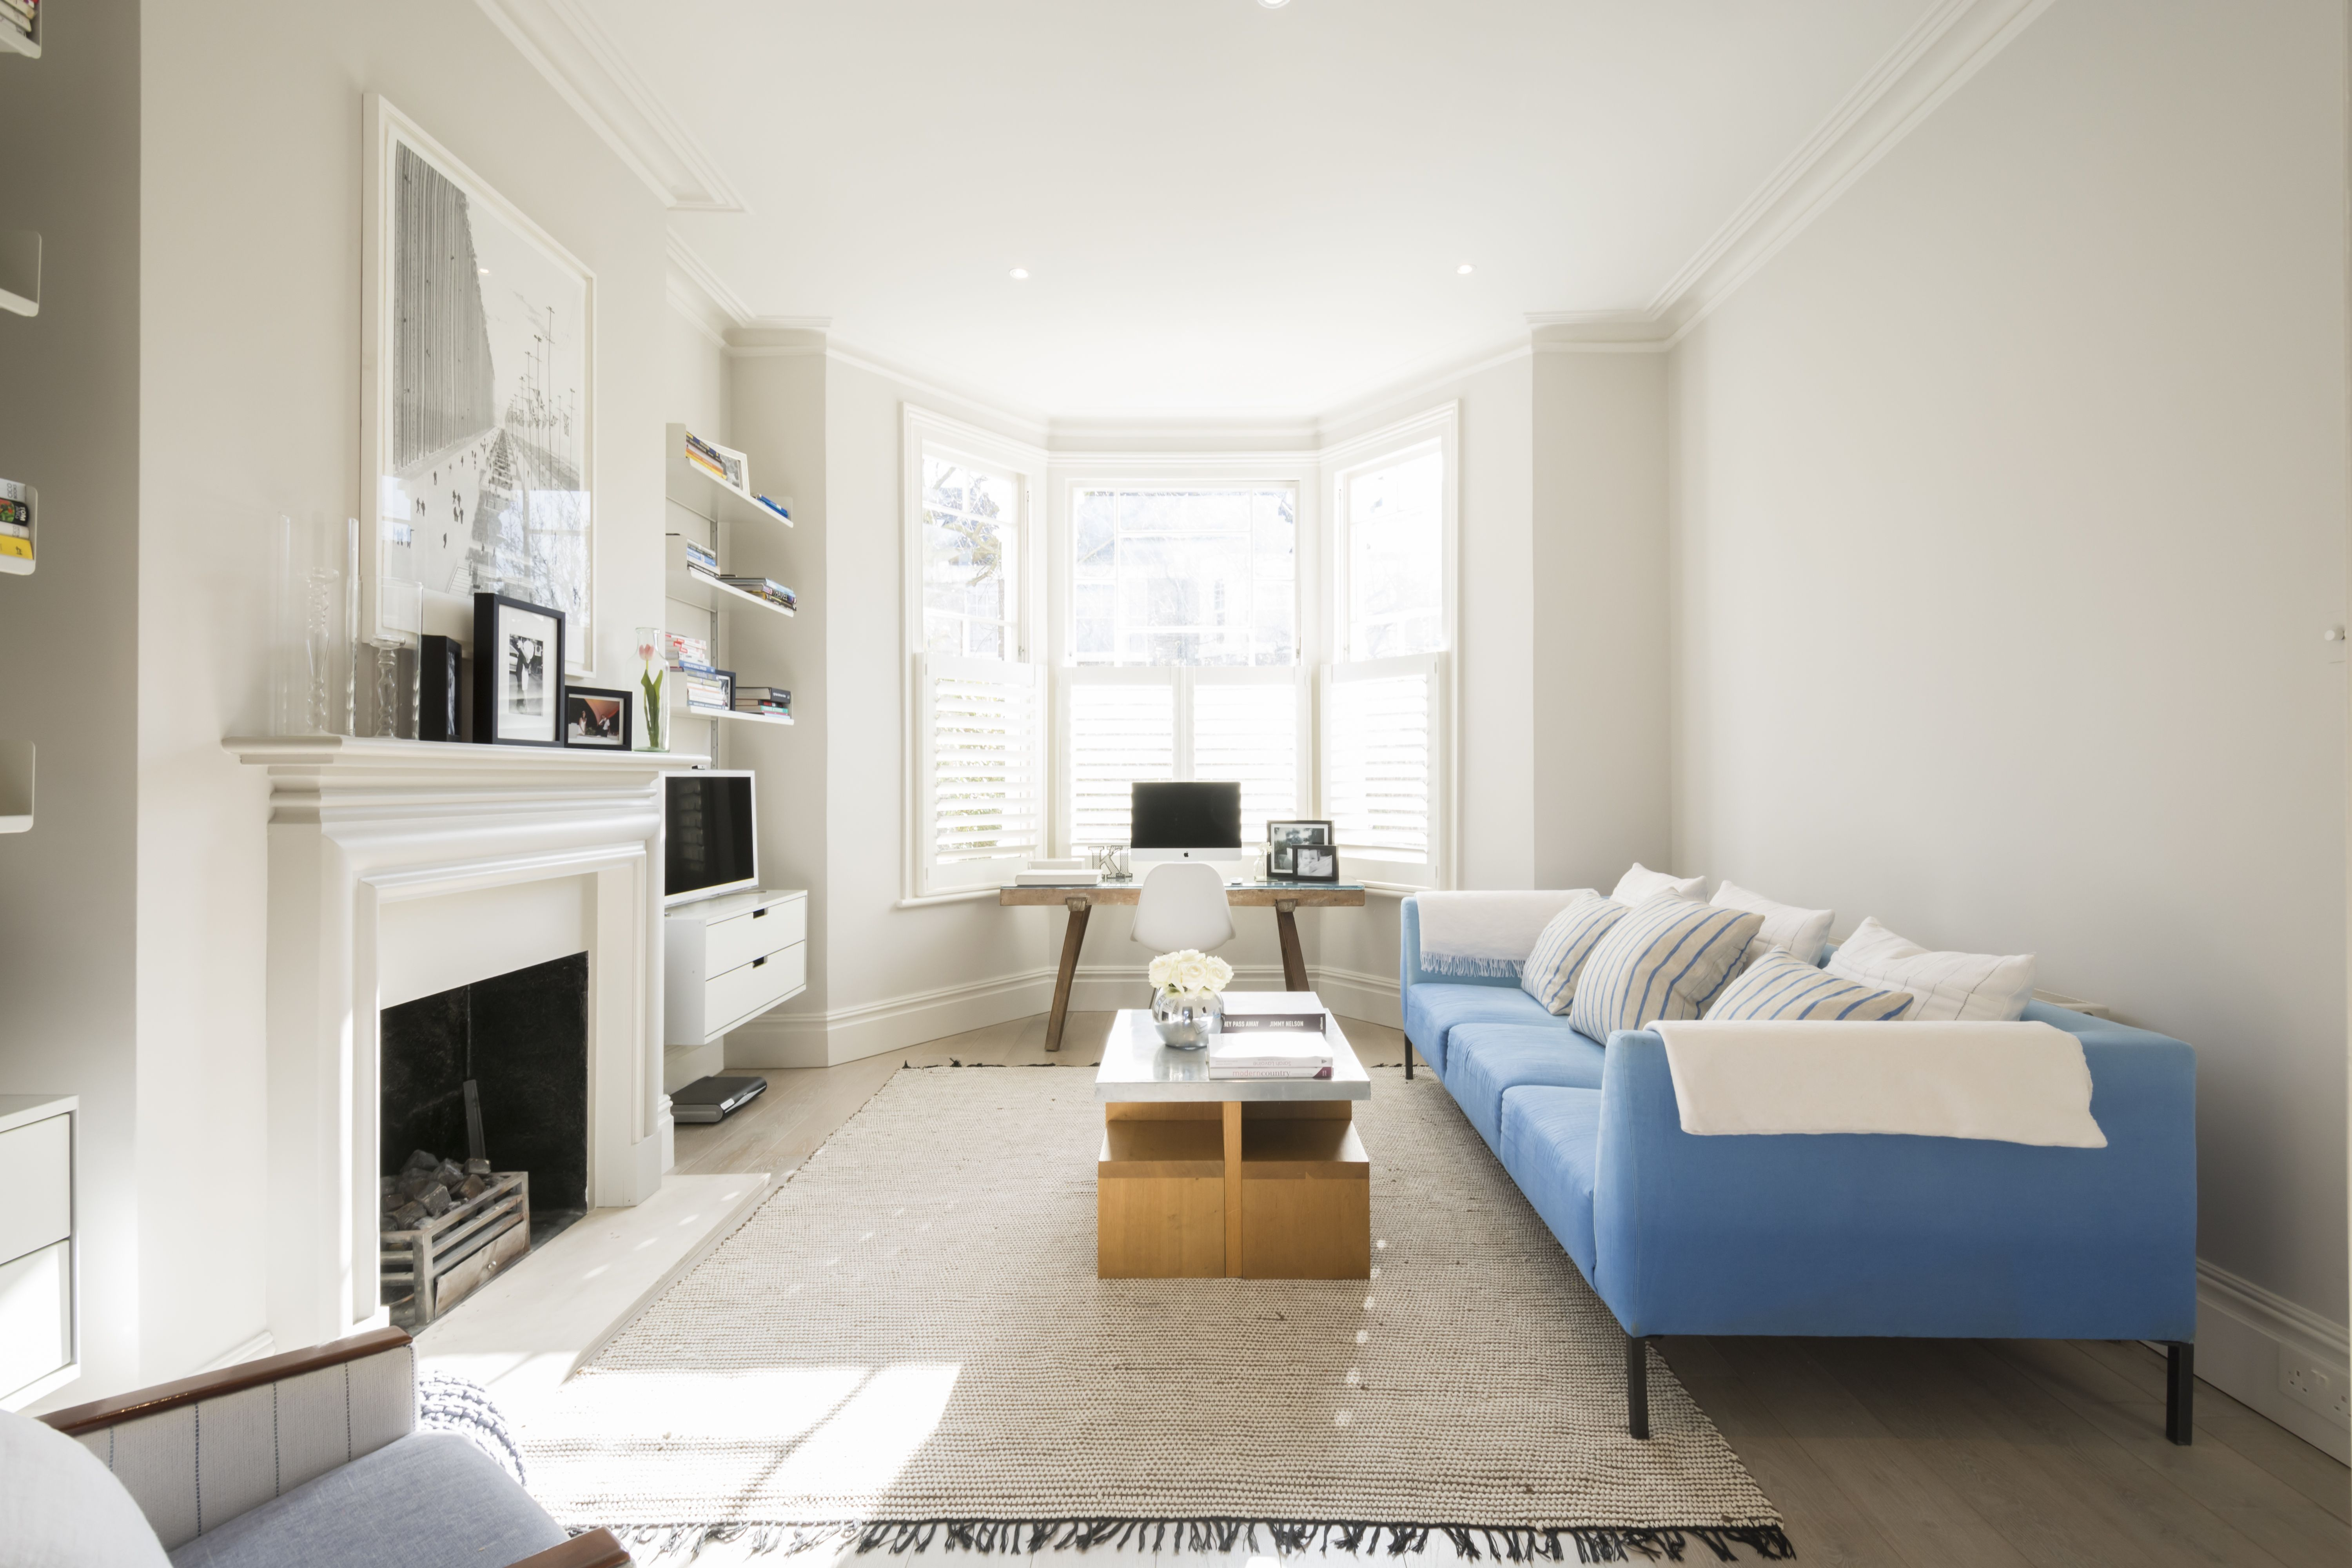 Living Room With Light Blue Sofa Fireplace And White Plantain Shutters In Victorian House Londo Interior Design Beautiful Living Rooms Interior Design Studio